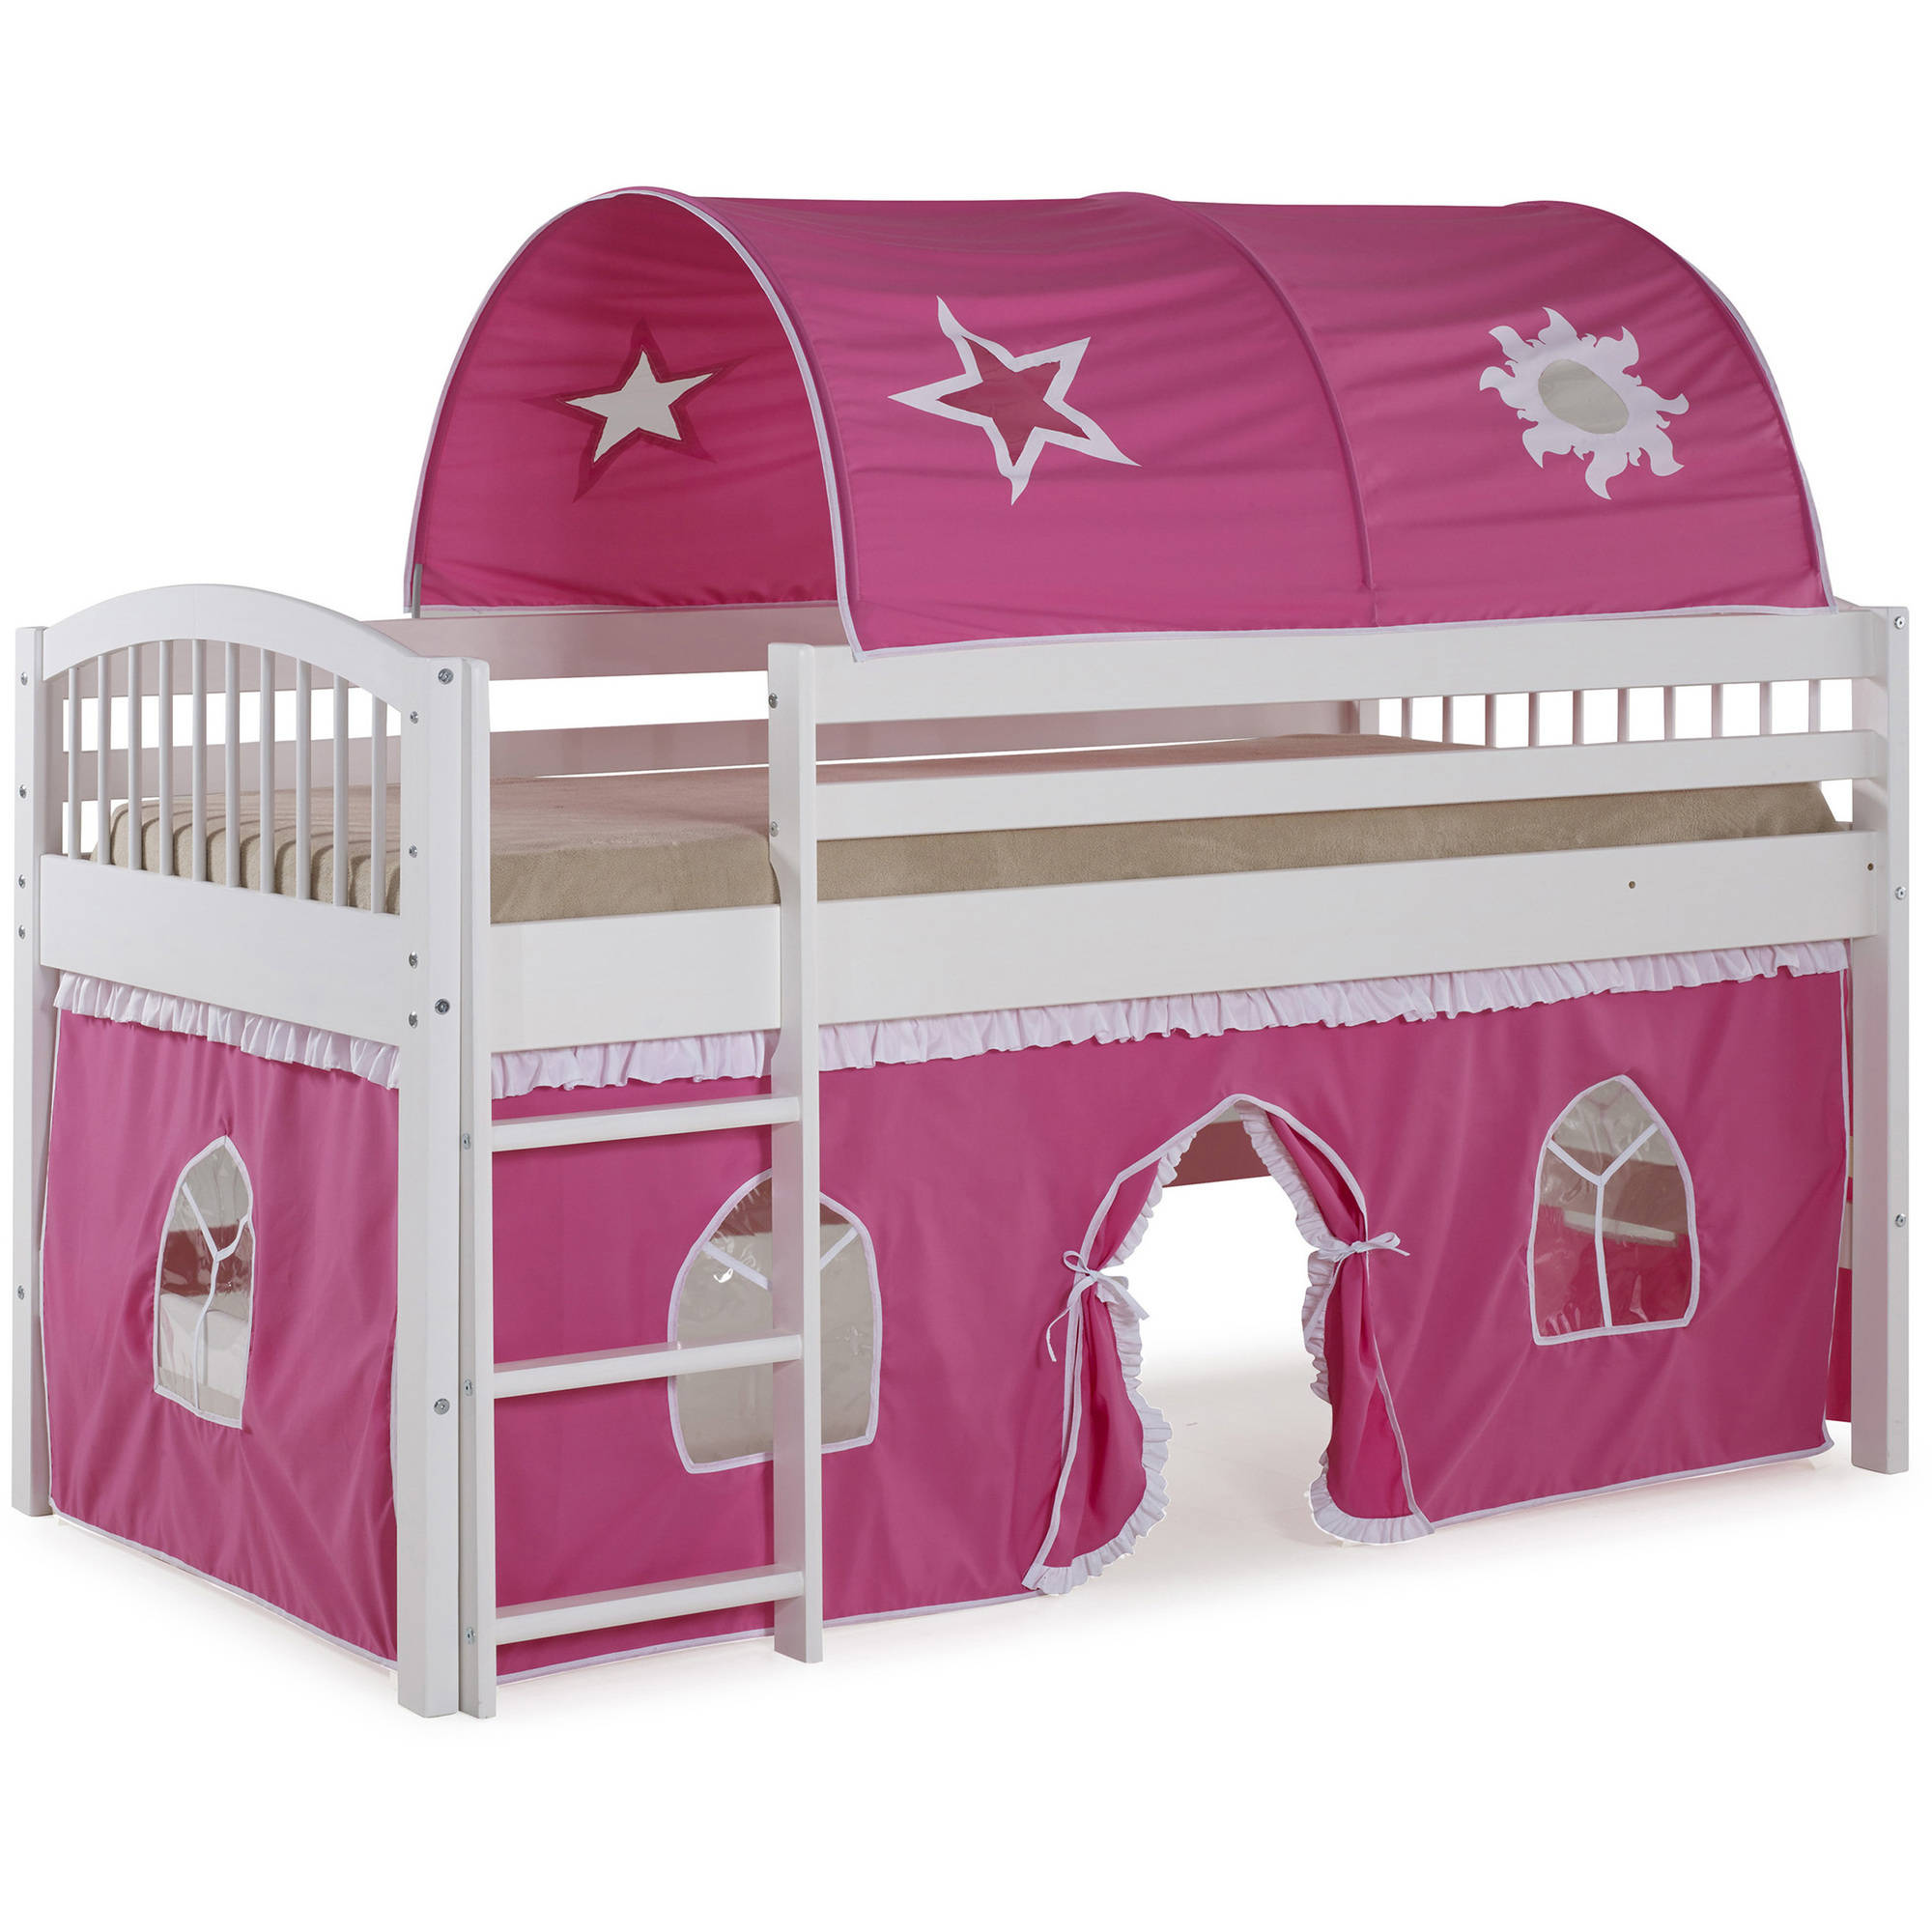 Addison White Junior Loft Bed, Pink and White Tent and Playhouse with White Trim